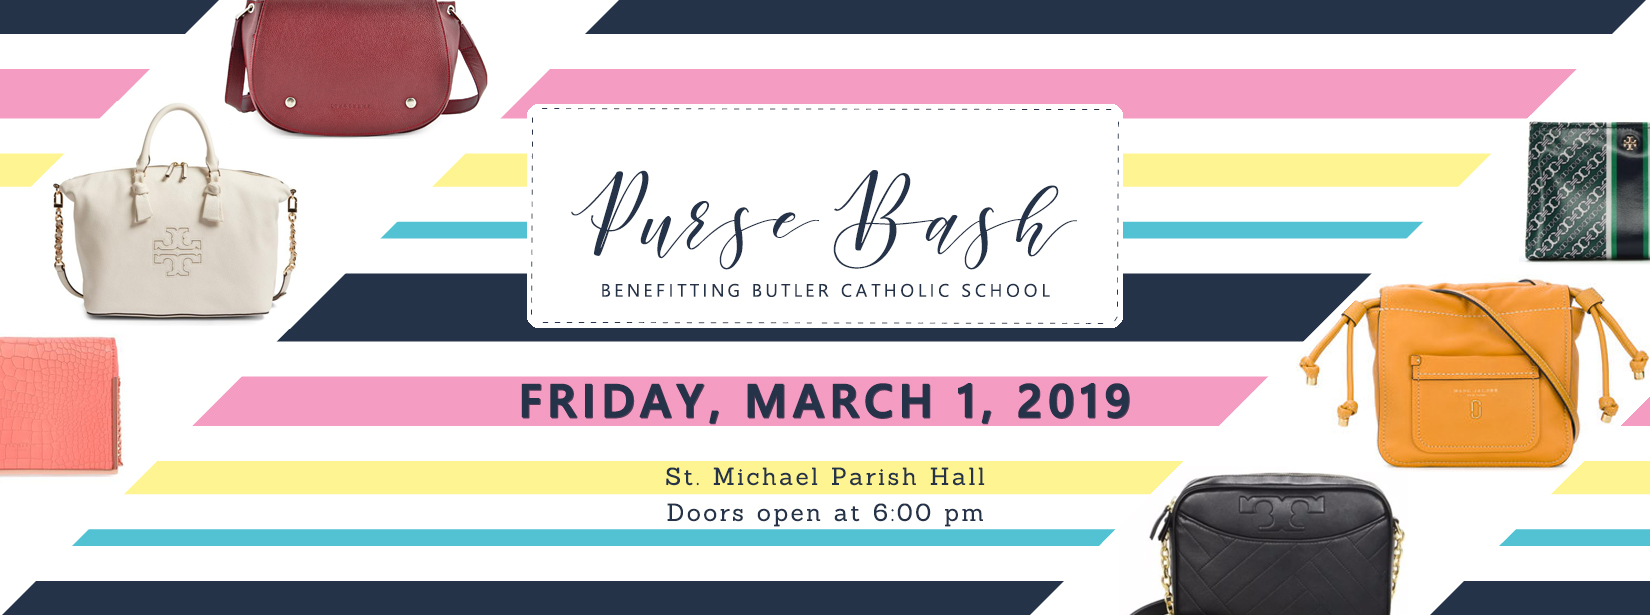 Purse-Bash-BC-Slider-2019